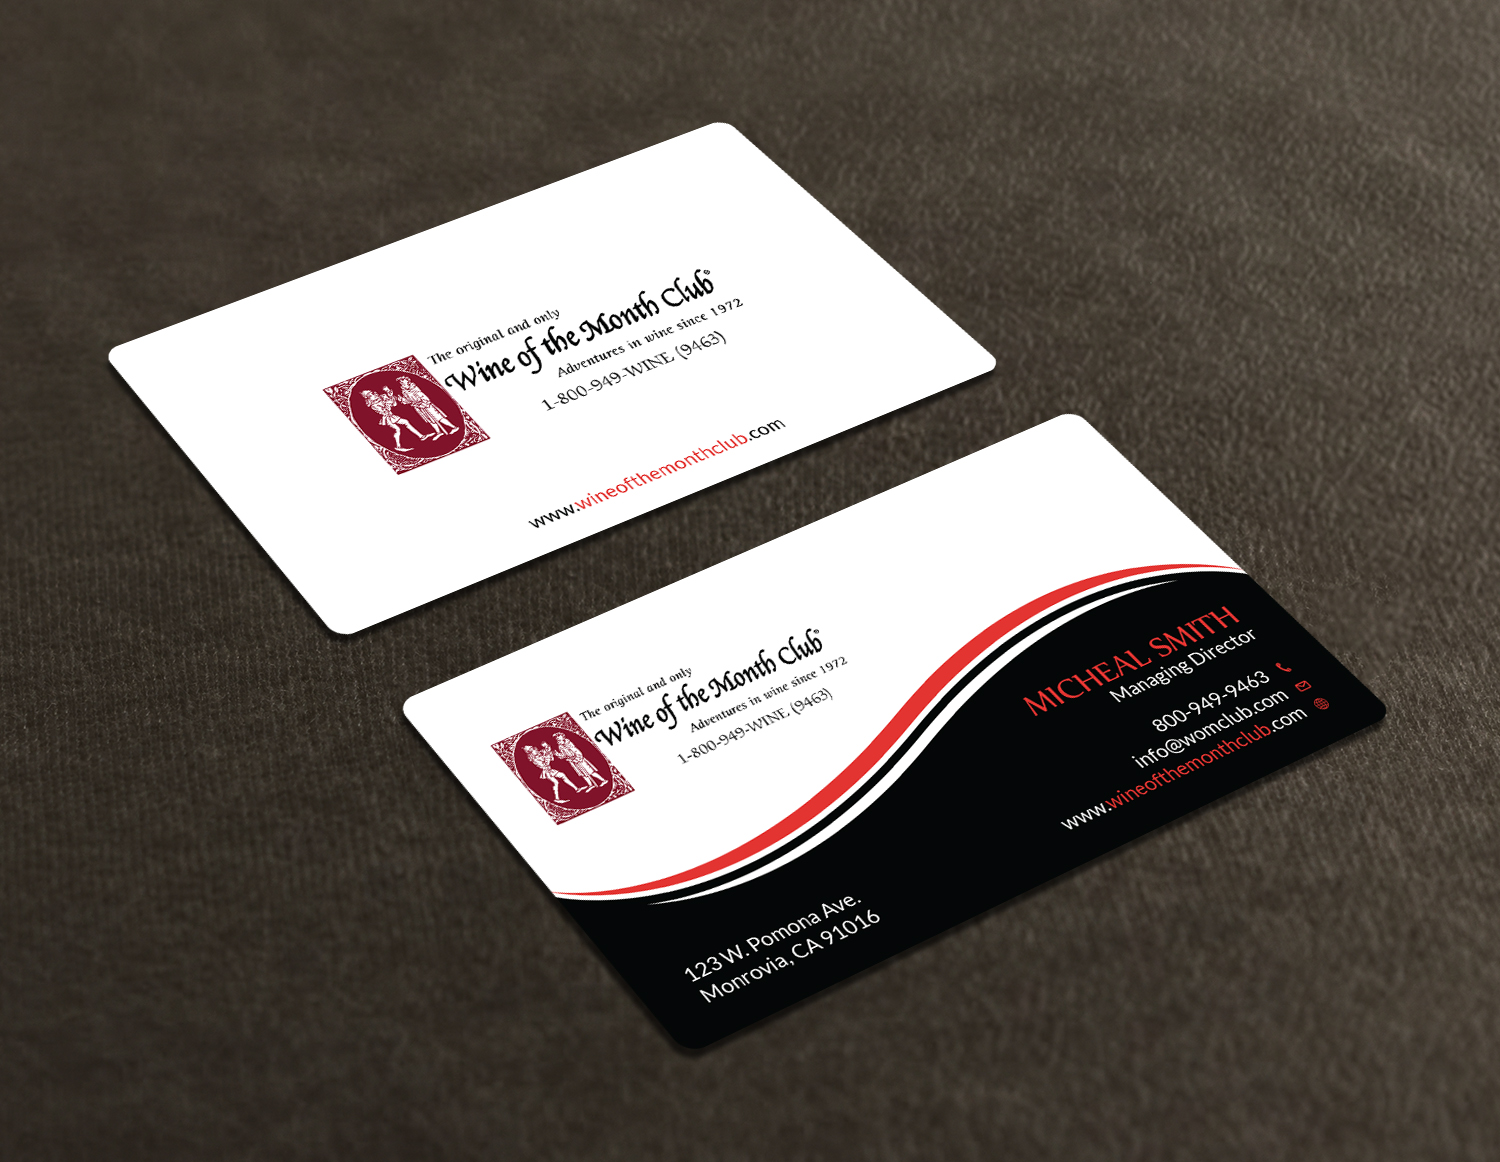 Business business card design for wine of the month club by business business card design for wine of the month club in united states design 17824208 colourmoves